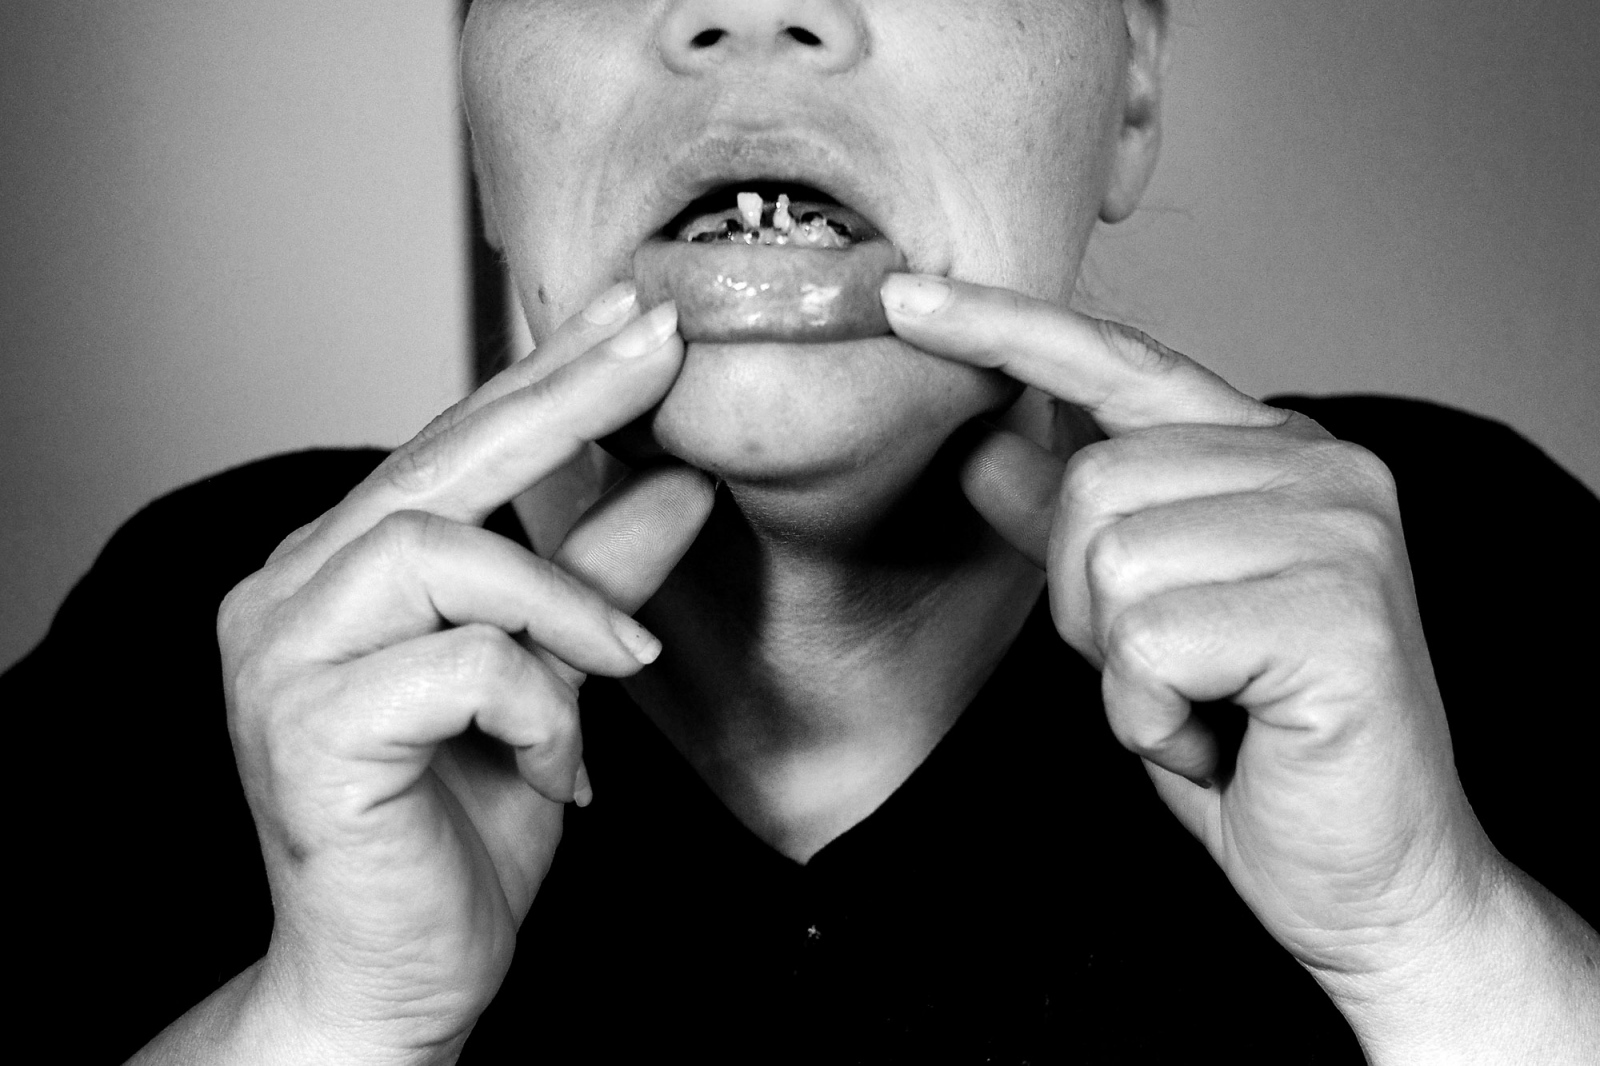 Fresno, California 2013 Dawn, shows one of the elements that characterizes a metanfetamin addict, the so called meth mouth. This substance abuse dries the salivatory glands making teeth crack and fall out in a short time.